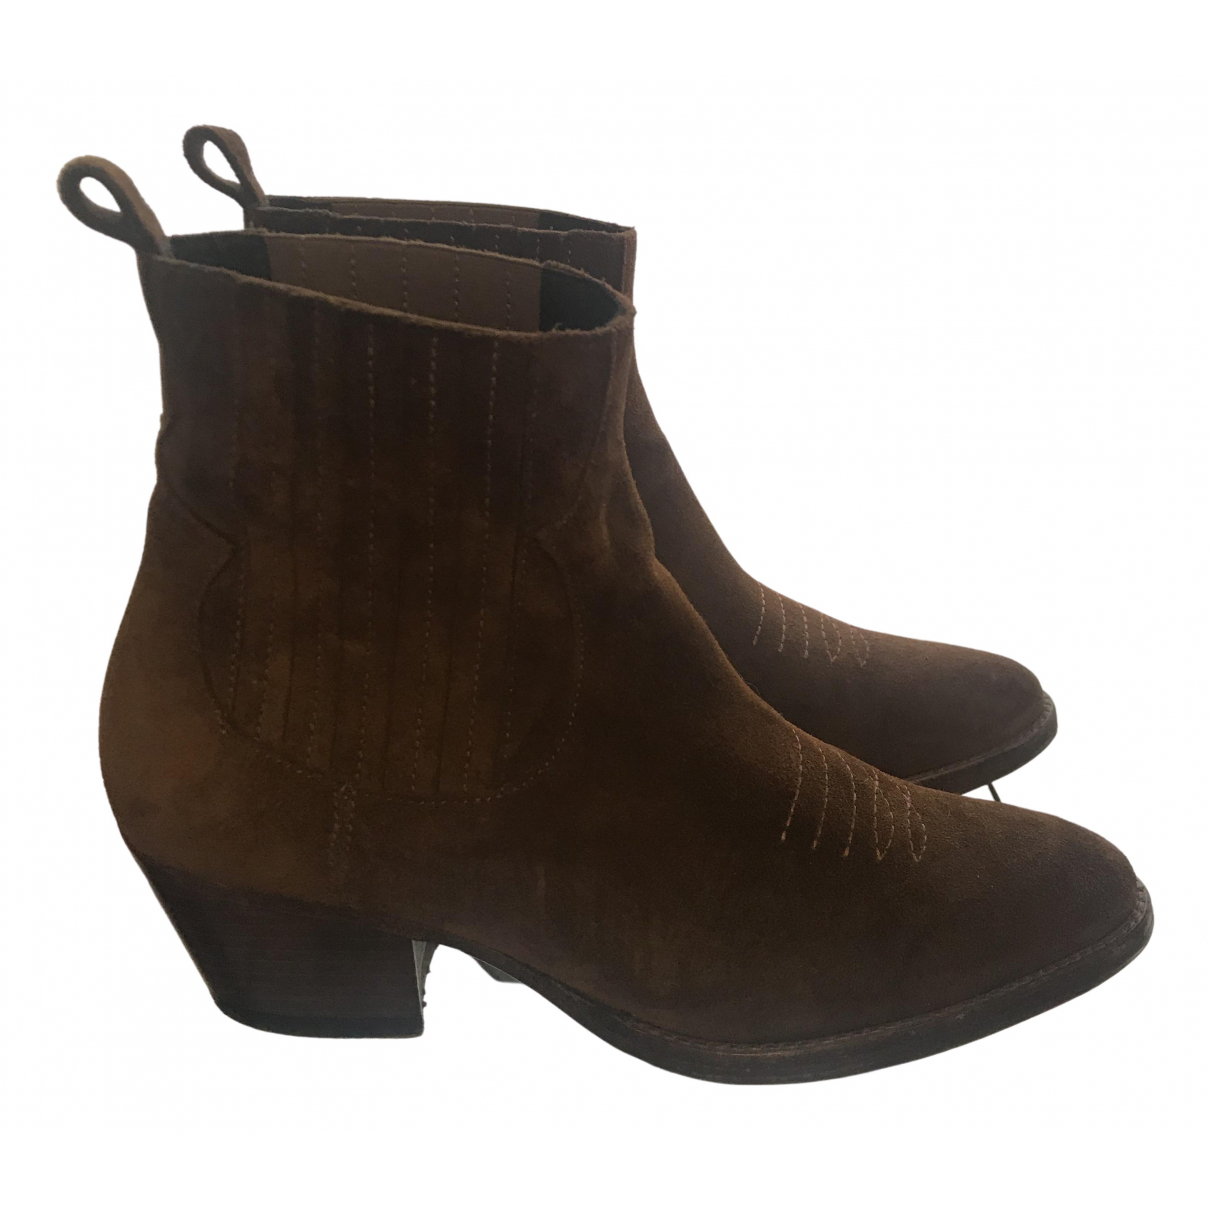 Maje N Camel Suede Ankle boots for Women 38 EU